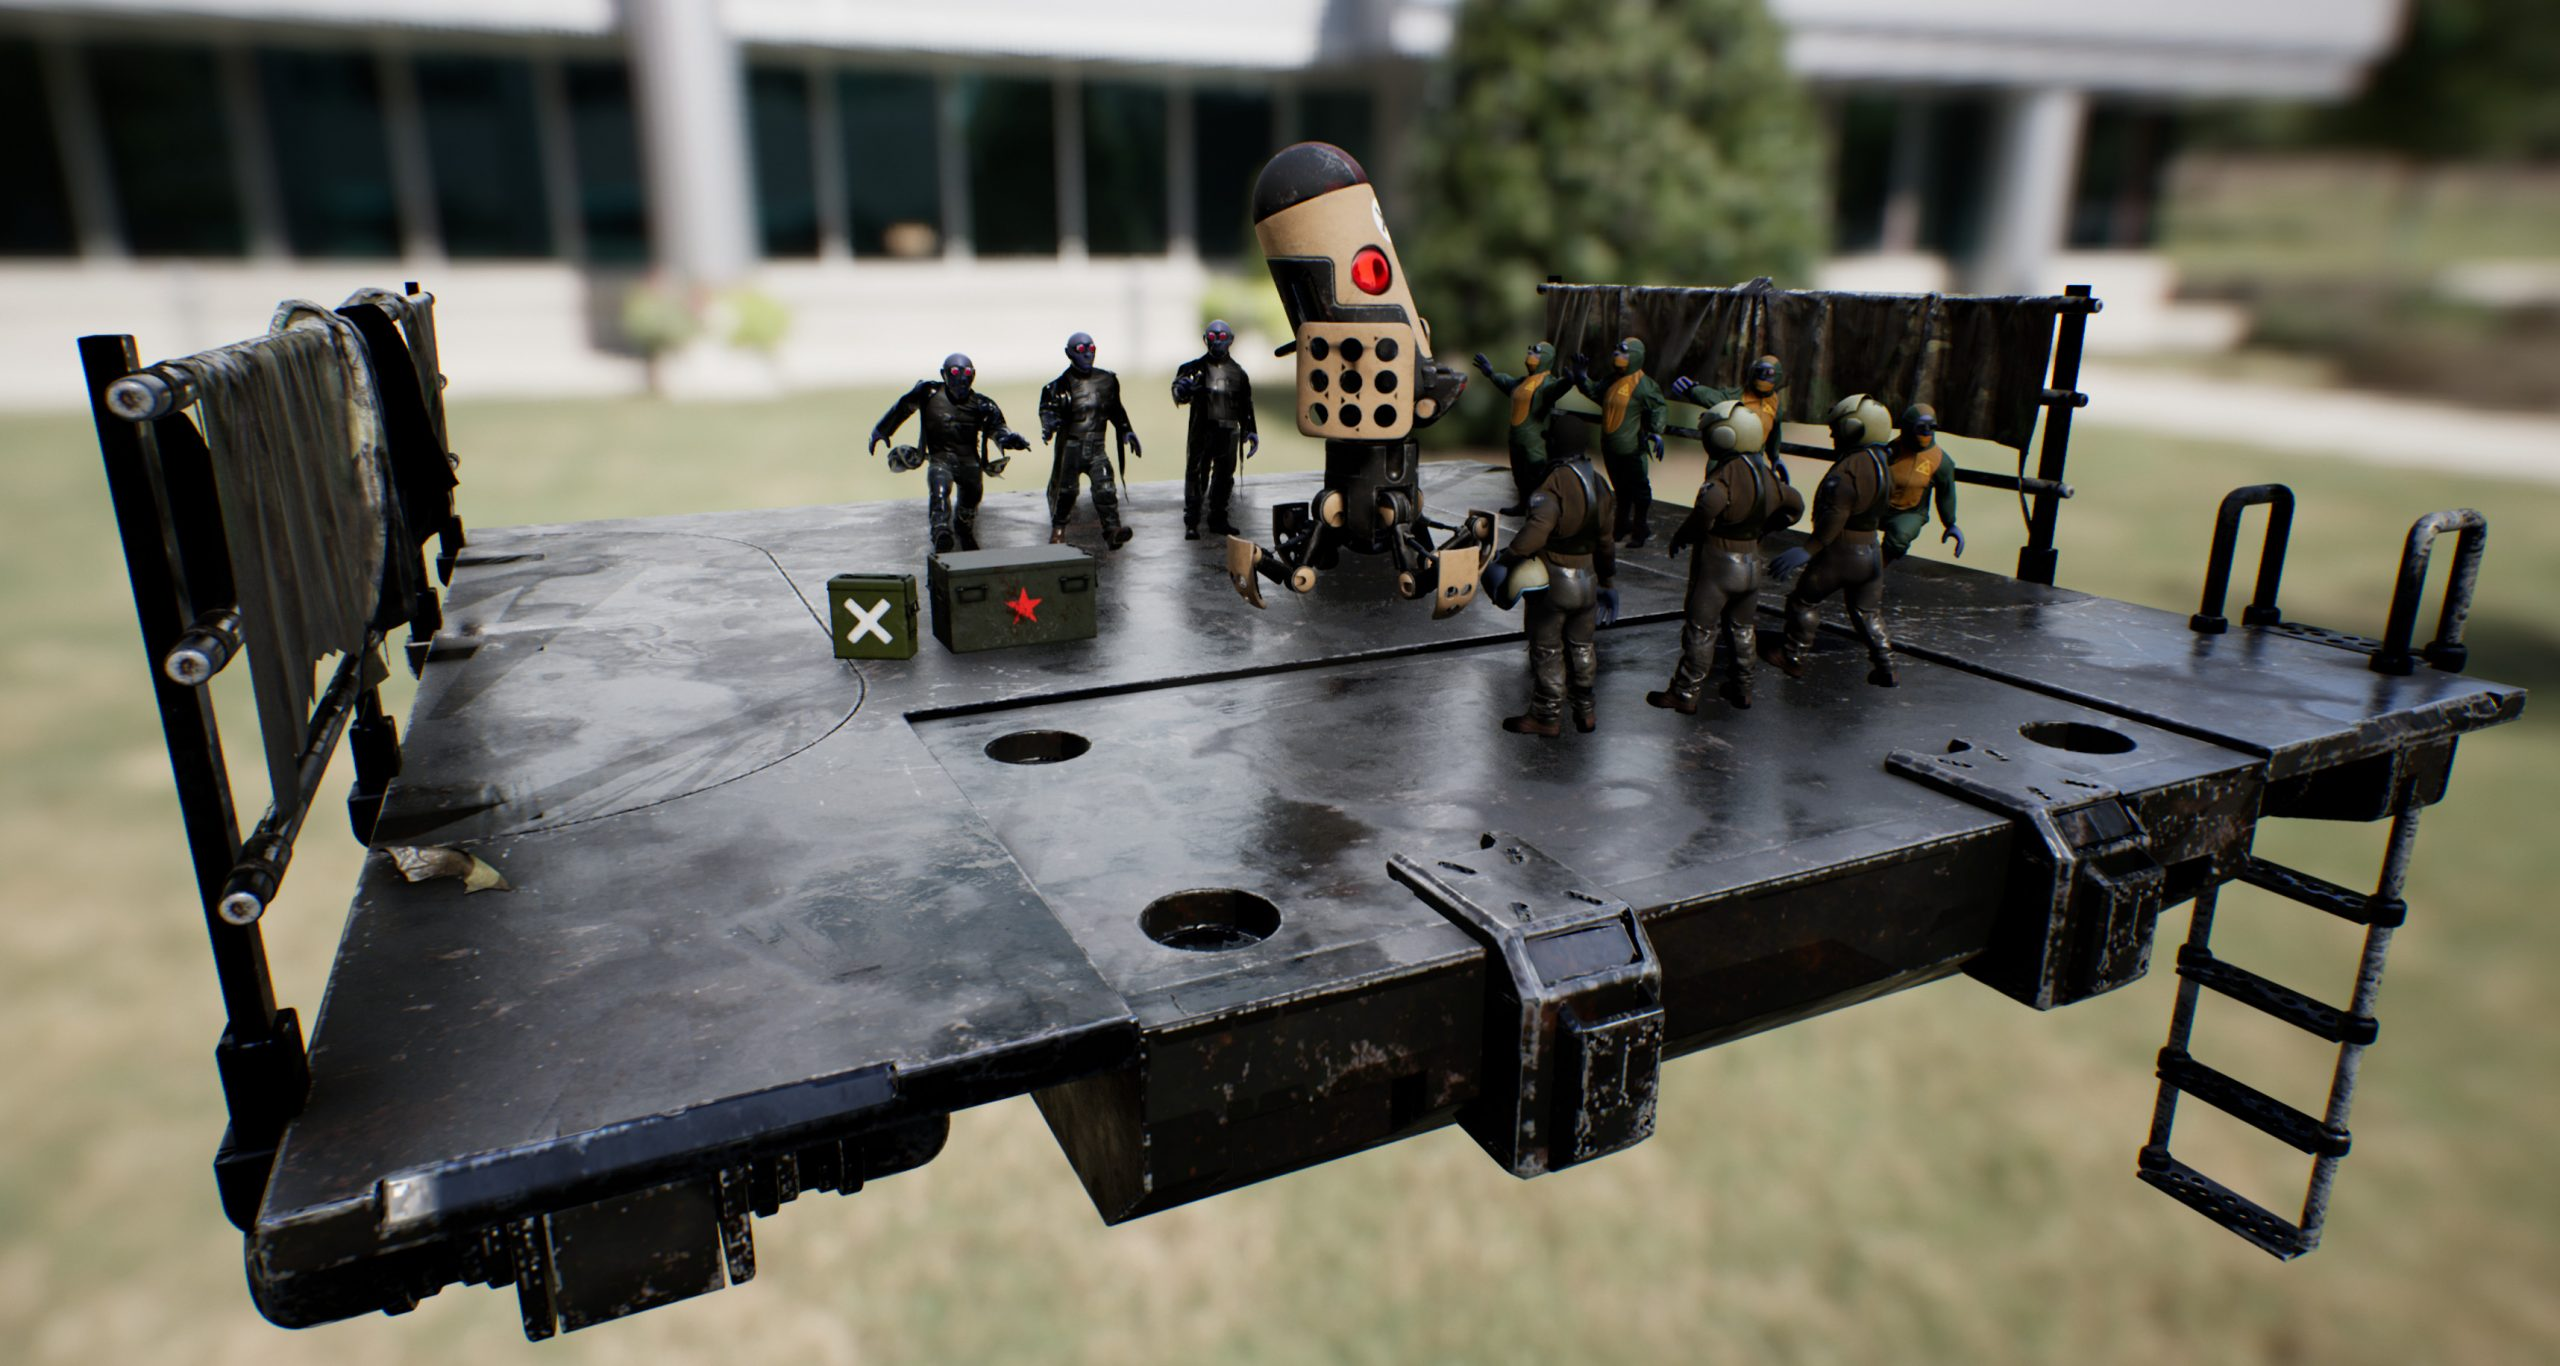 3D artwork of men in combat suits standing around a robot microphone on a stage